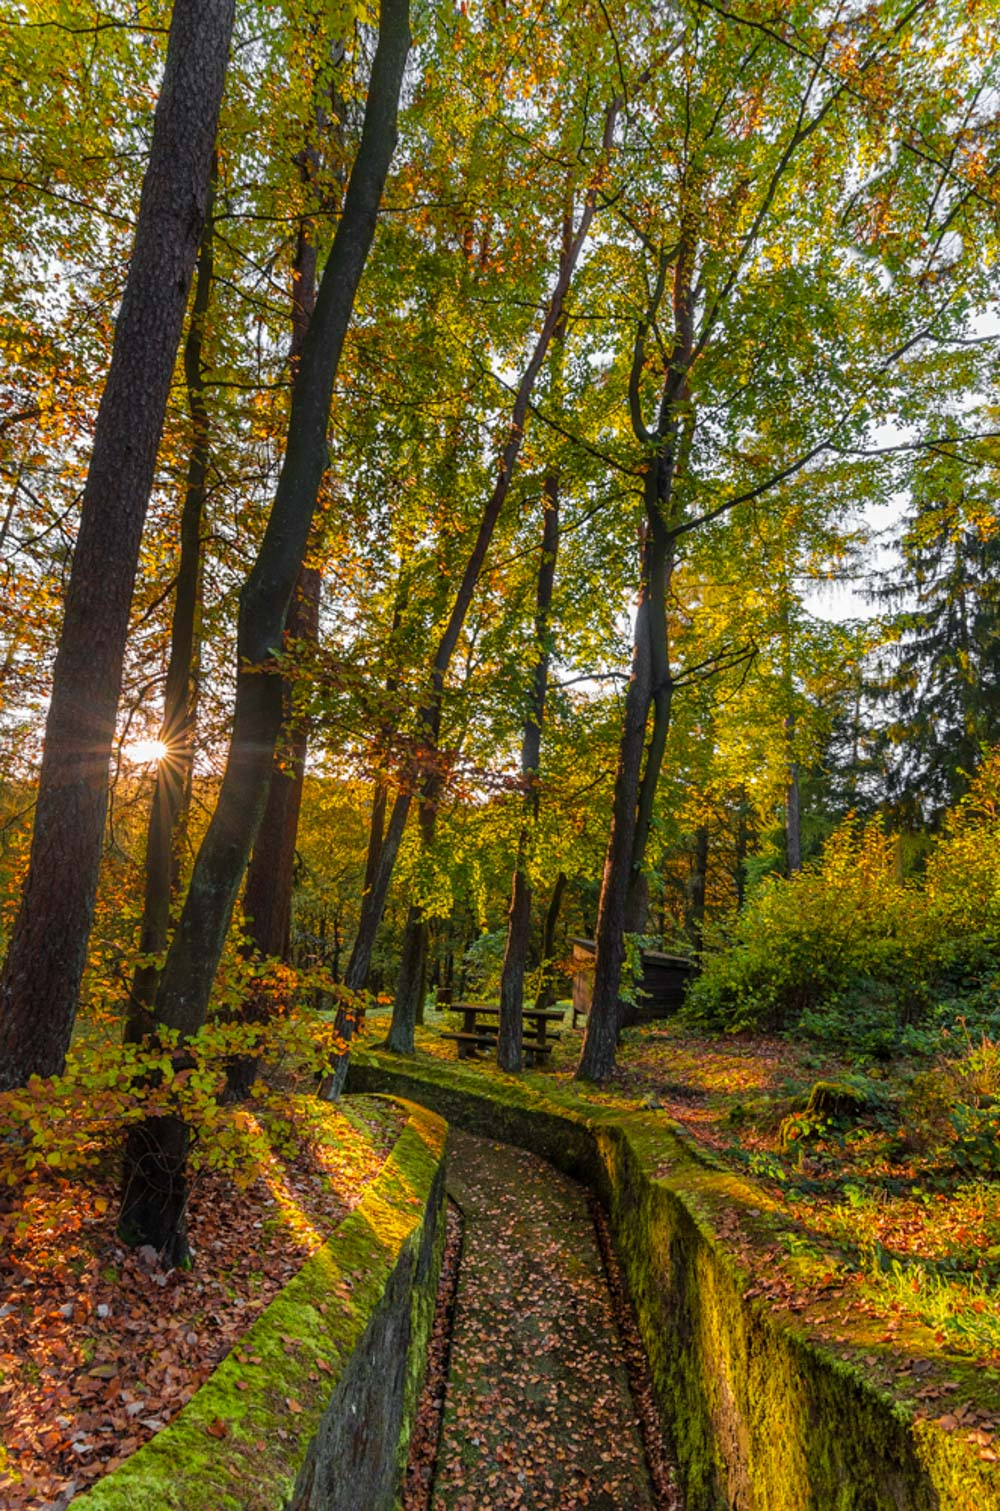 Fall colors Catalin Burlacu Luxembourg Photographer        .JPG